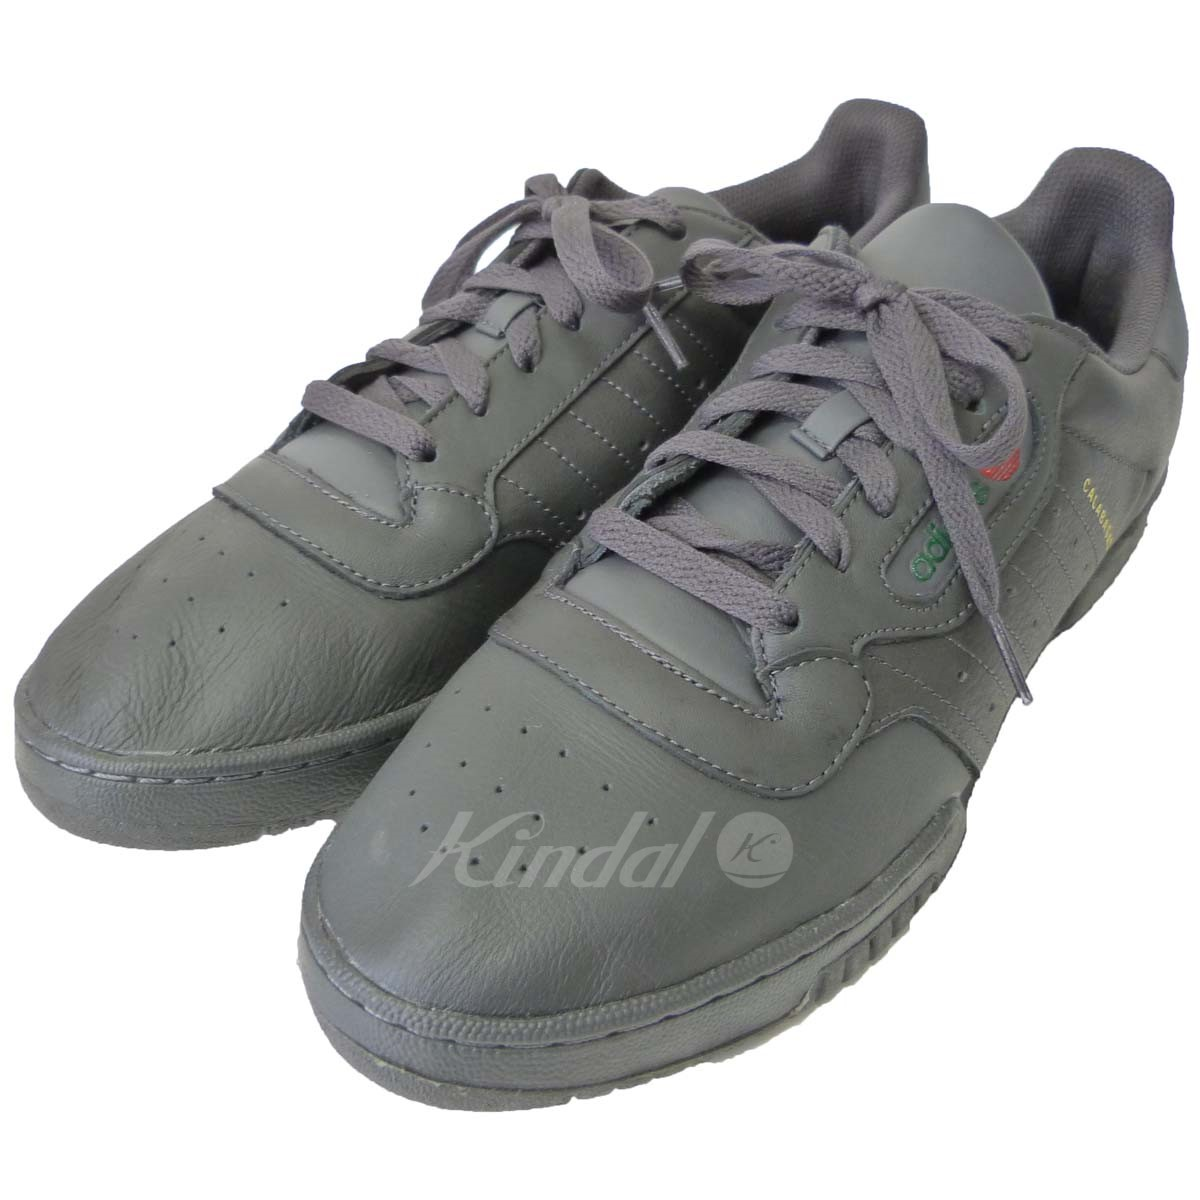 【中古】adidas originals by Kanye West CG6420「YEEZY POWERPHASE」スニーカー 【送料無料】 【049026】 【KIND1641】